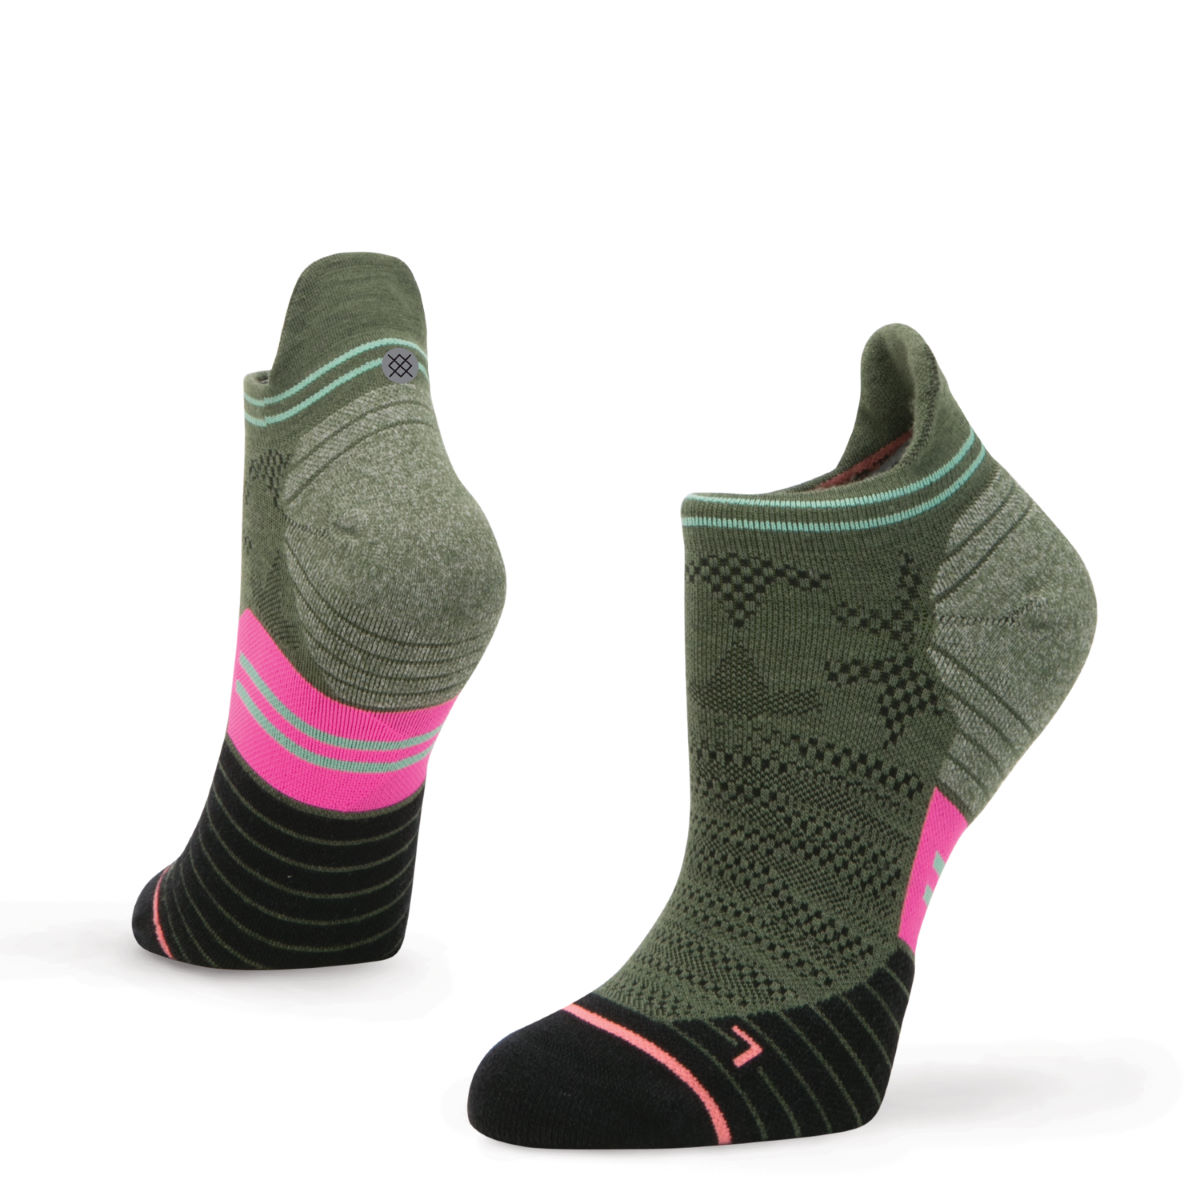 Calcetines Stance Elipse Tab Run para mujer (caña baja) - Calcetines